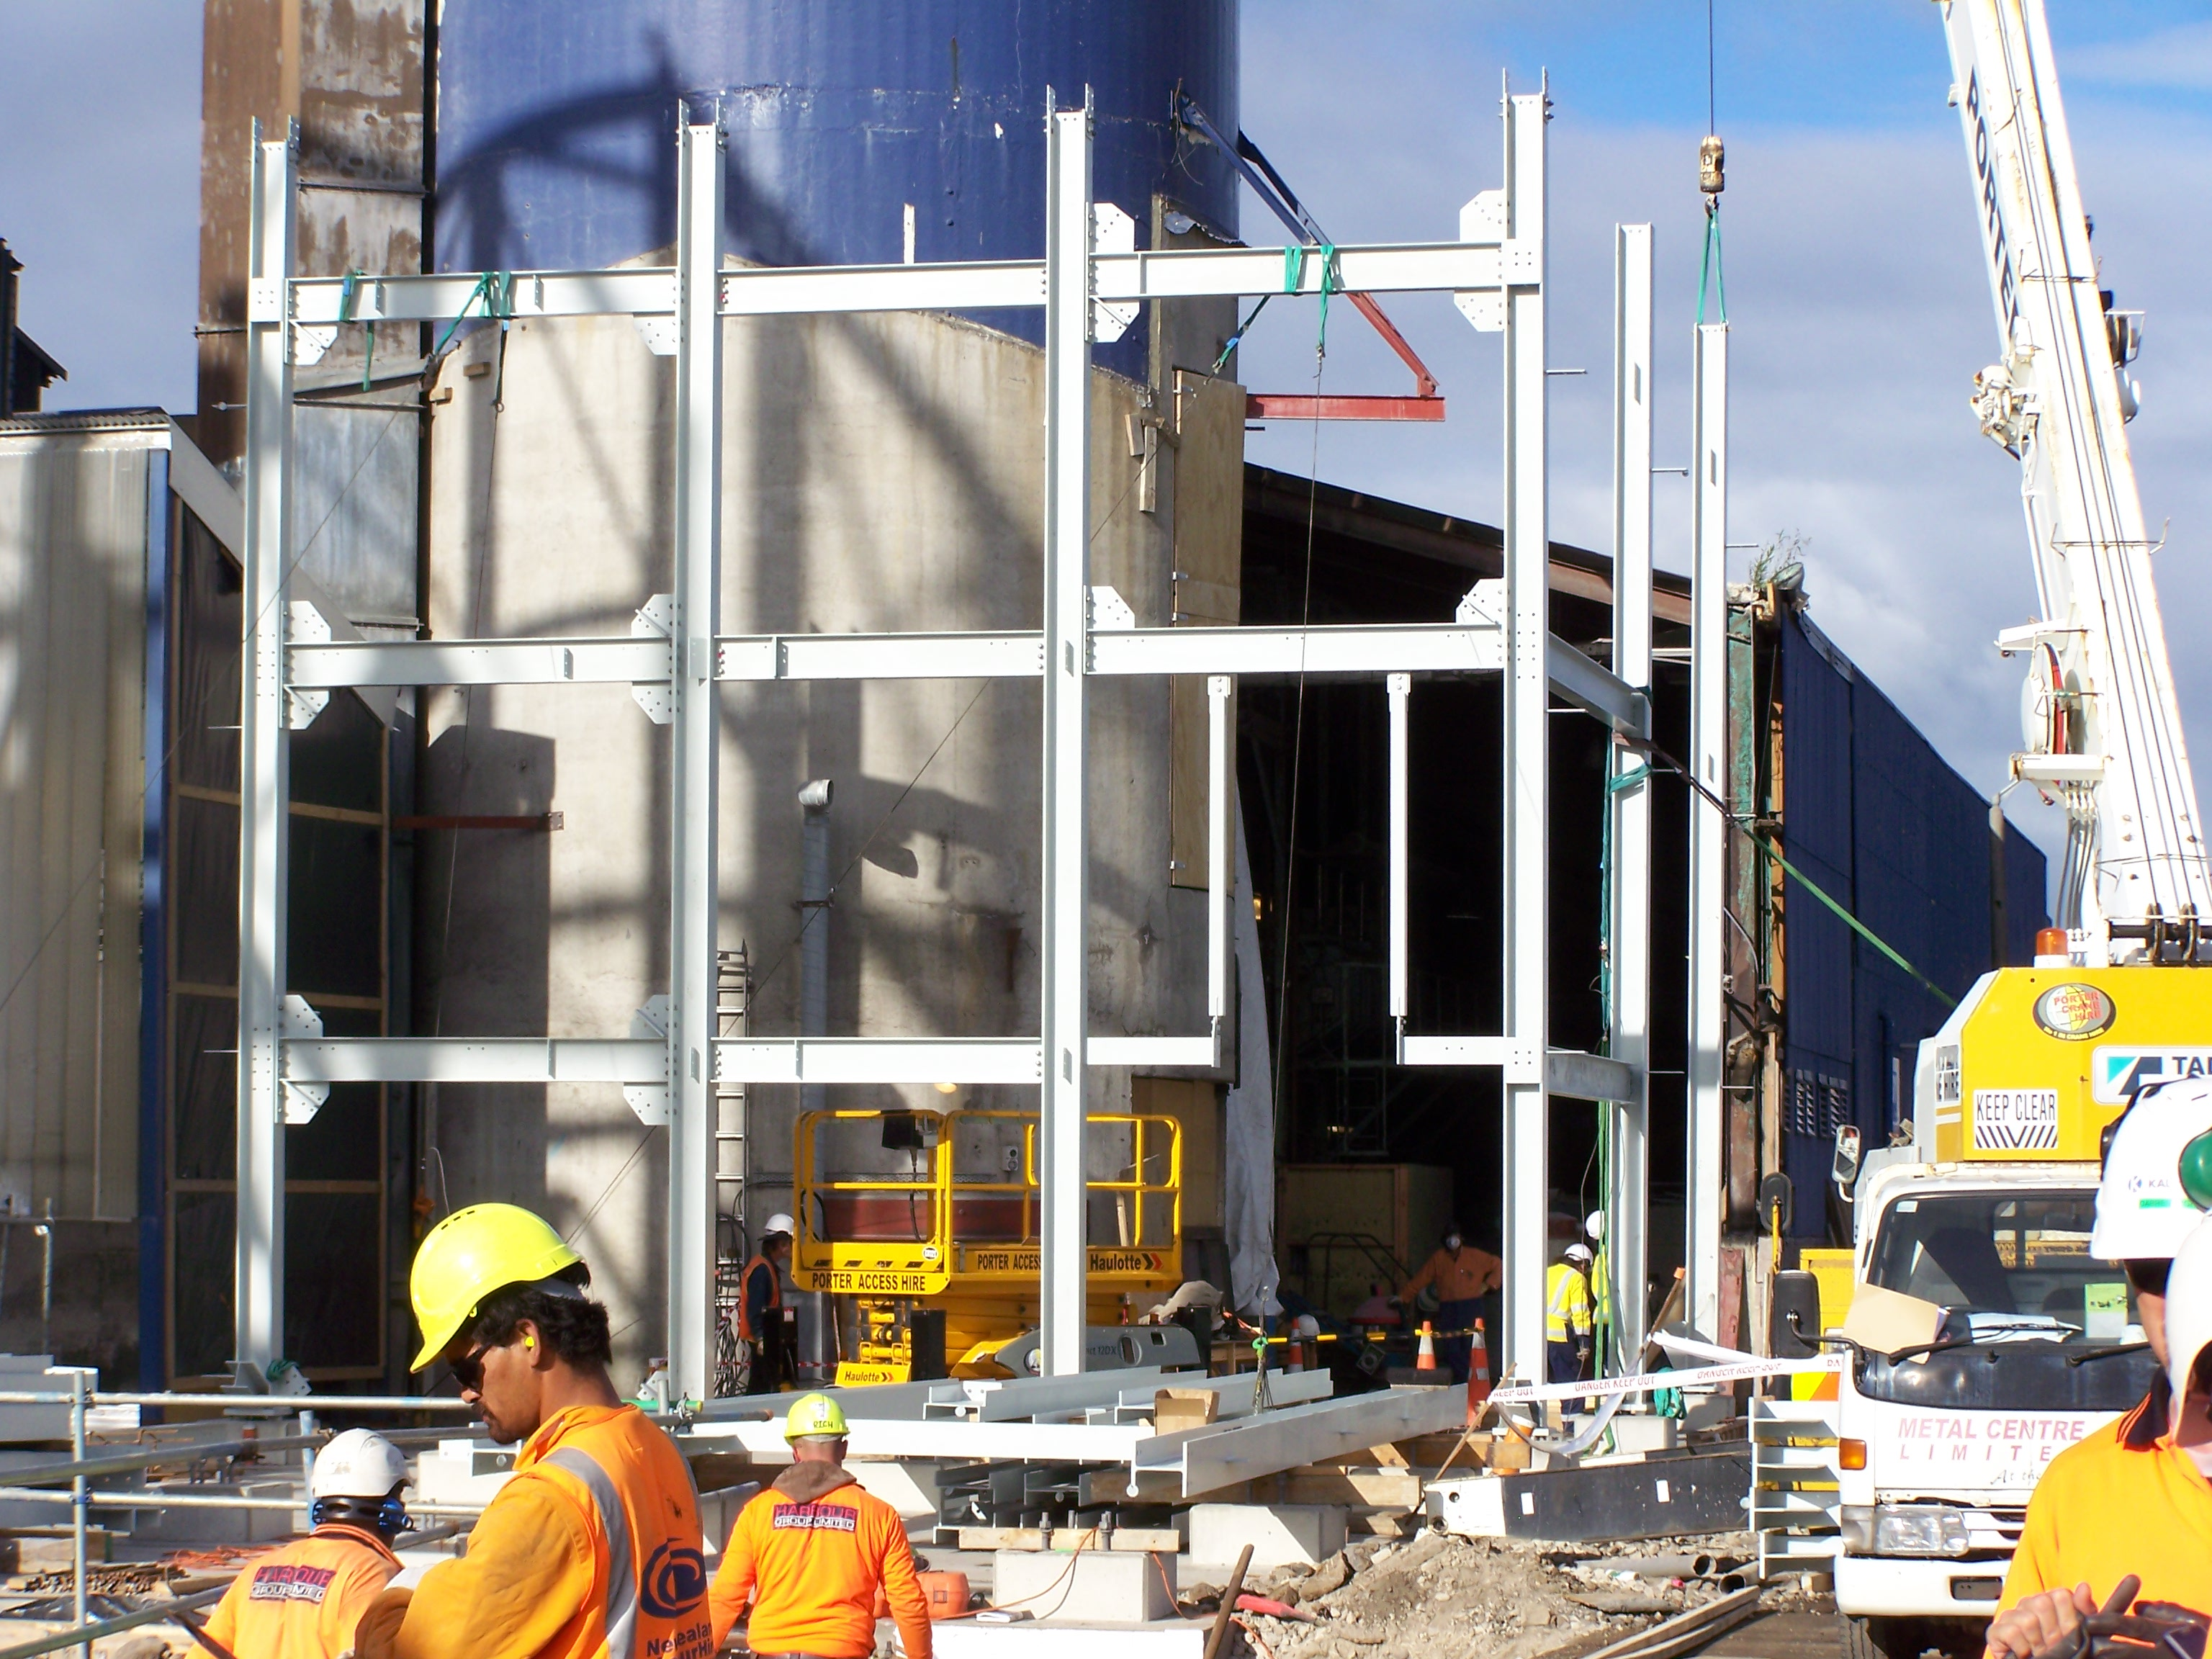 oi nz ak4 new facility construction key industries service engineers limited